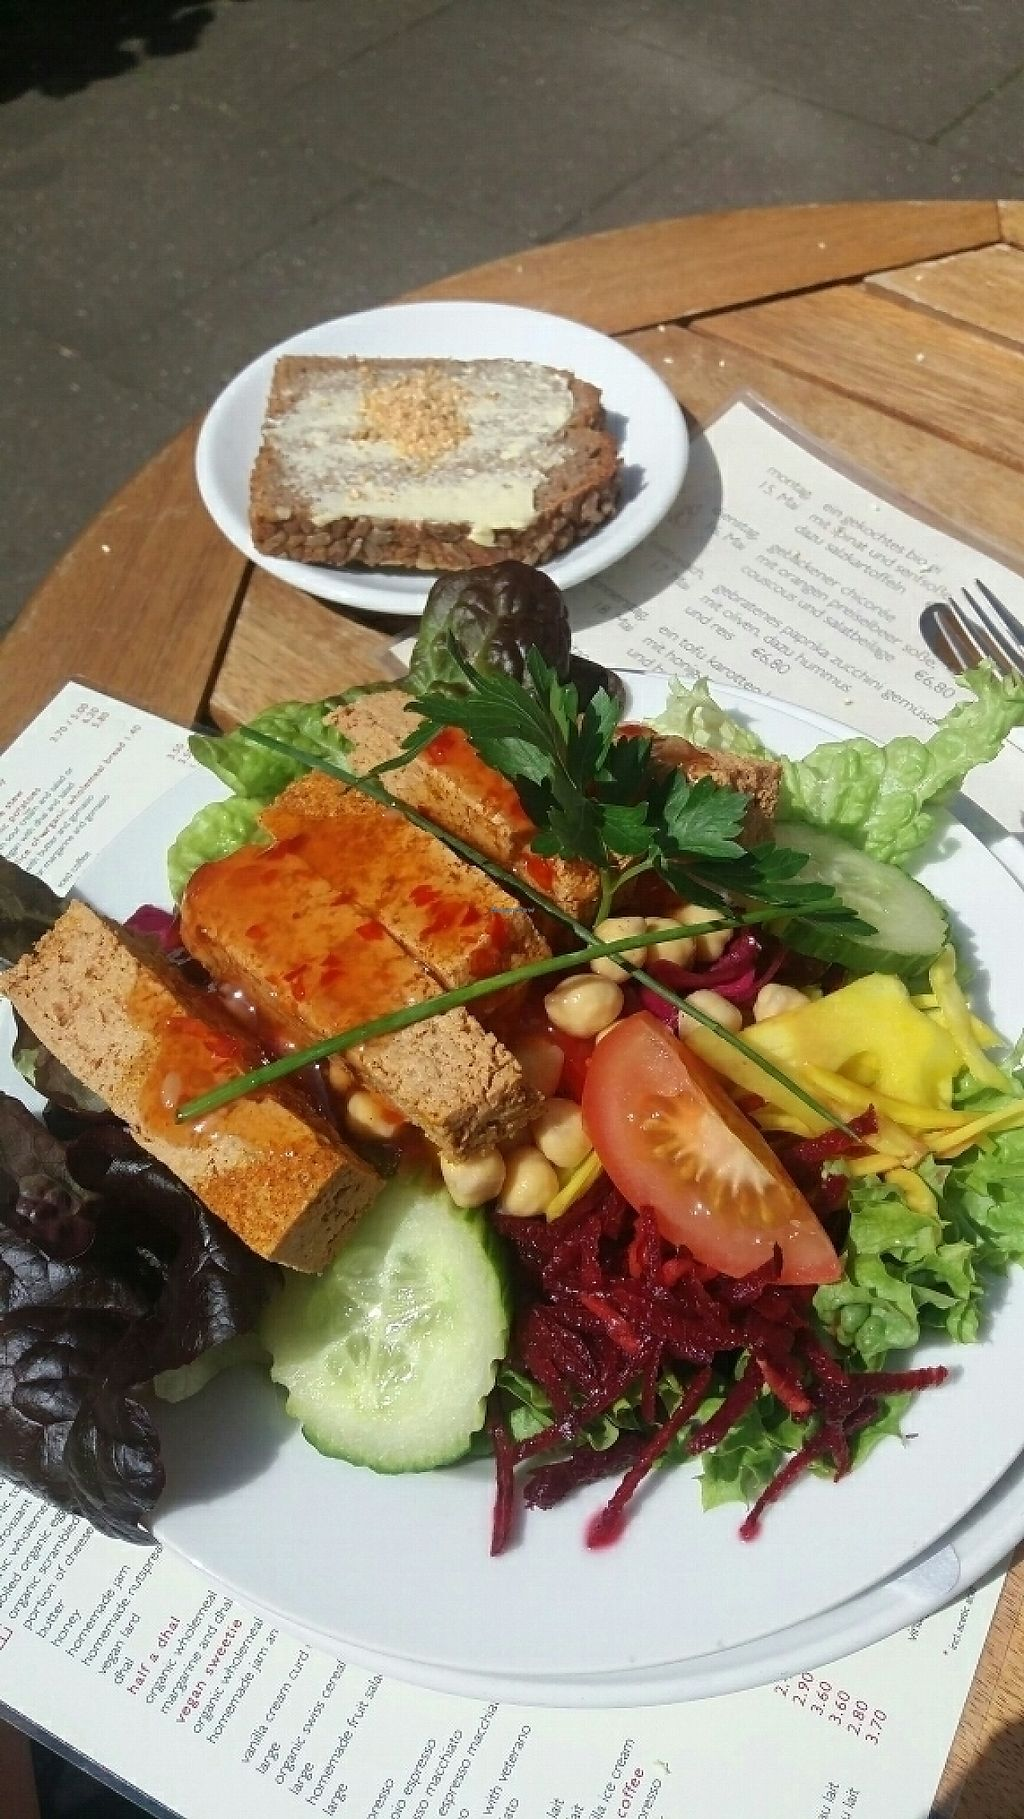 "Photo of Cafe Koppel  by <a href=""/members/profile/DavidWeatherston"">DavidWeatherston</a> <br/>tofu salad, crispy tofu strips with sweet chilli. delicious  <br/> May 18, 2017  - <a href='/contact/abuse/image/16259/259873'>Report</a>"